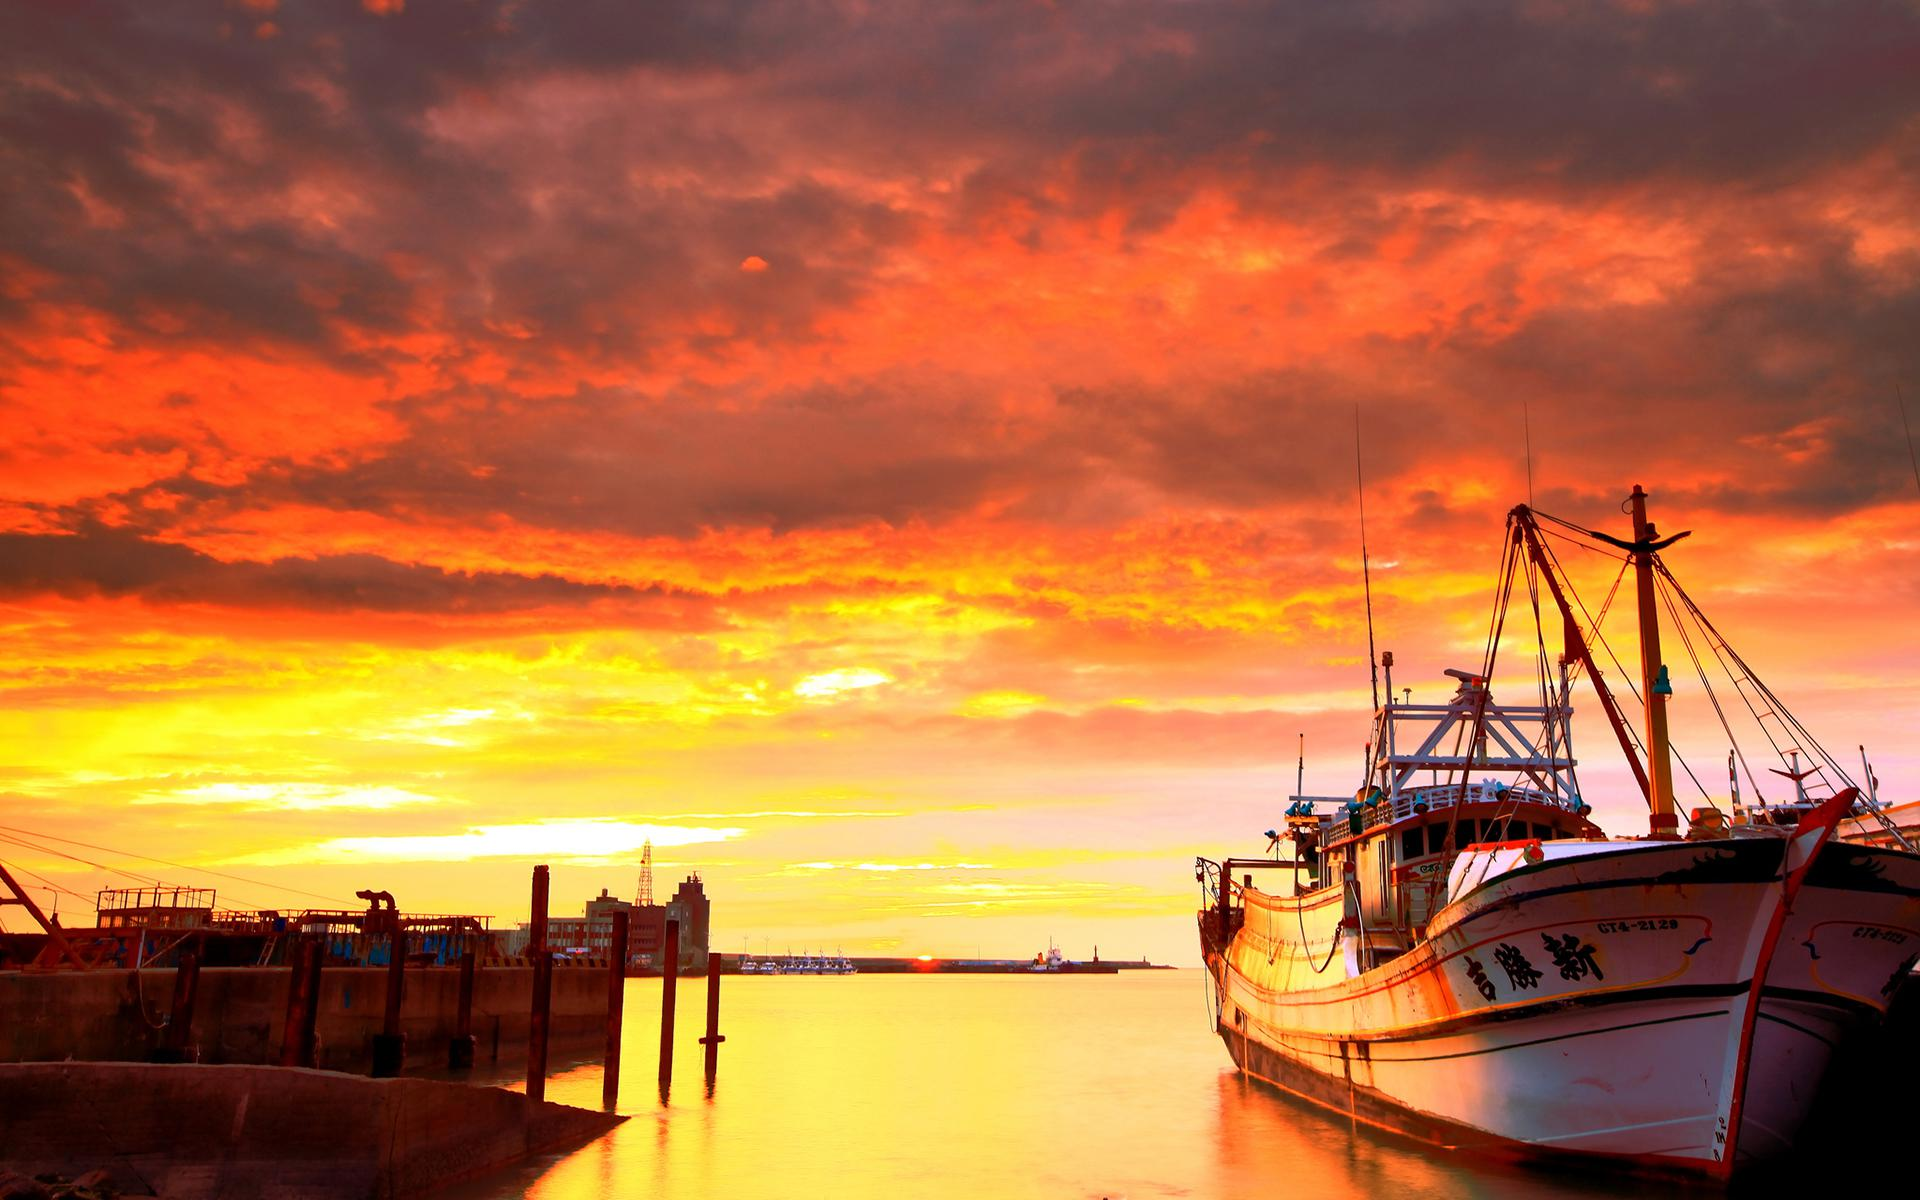 Funny Animated Wallpapers Hd Sunset Sunrise Sky Clouds Boats Ships Cool Wallpaper